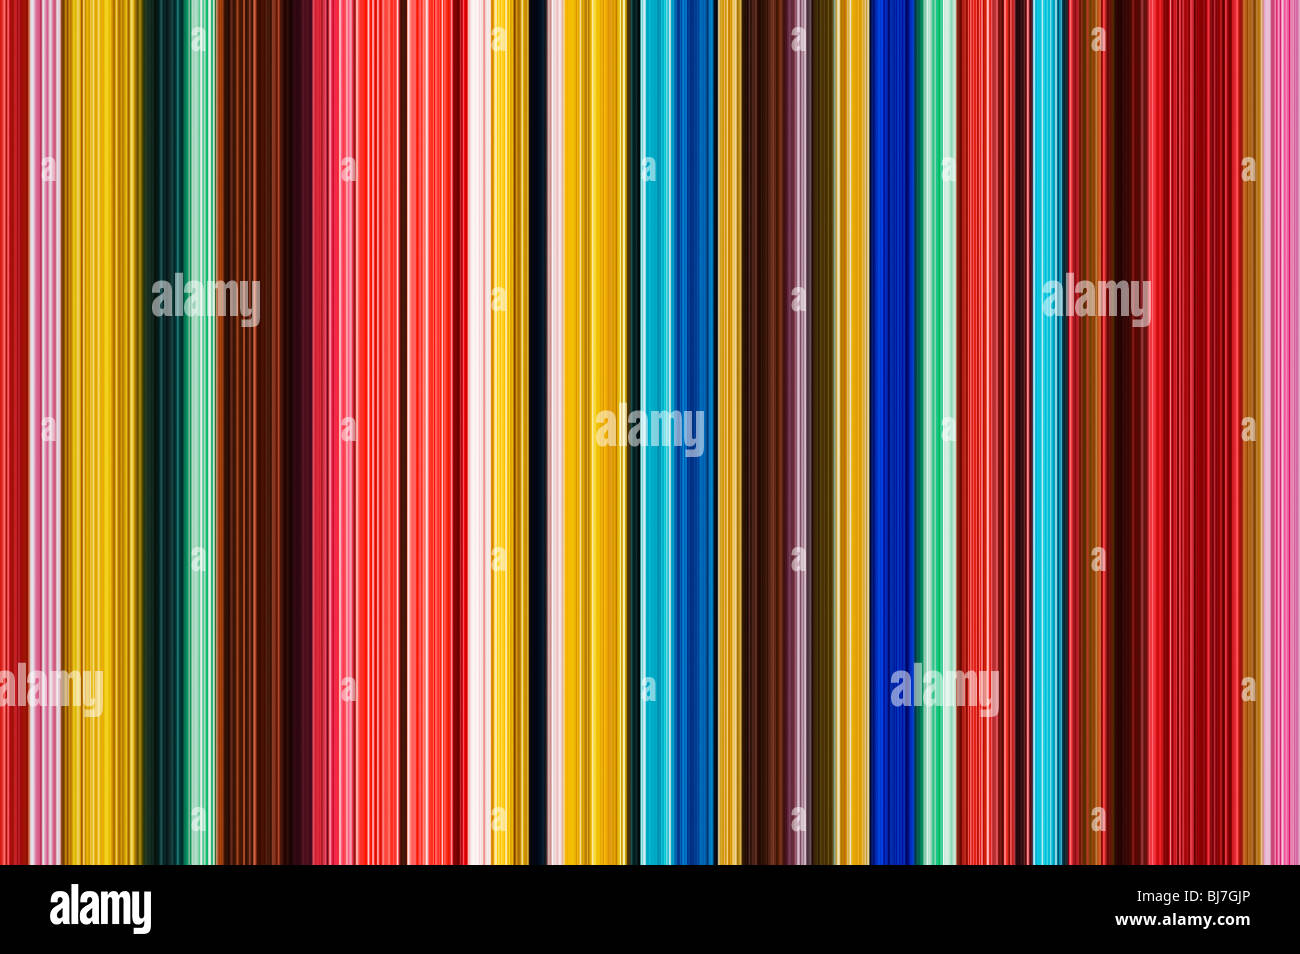 Multicoloured striped lines pattern. Digital illustration crafted from a photograph Stock Photo